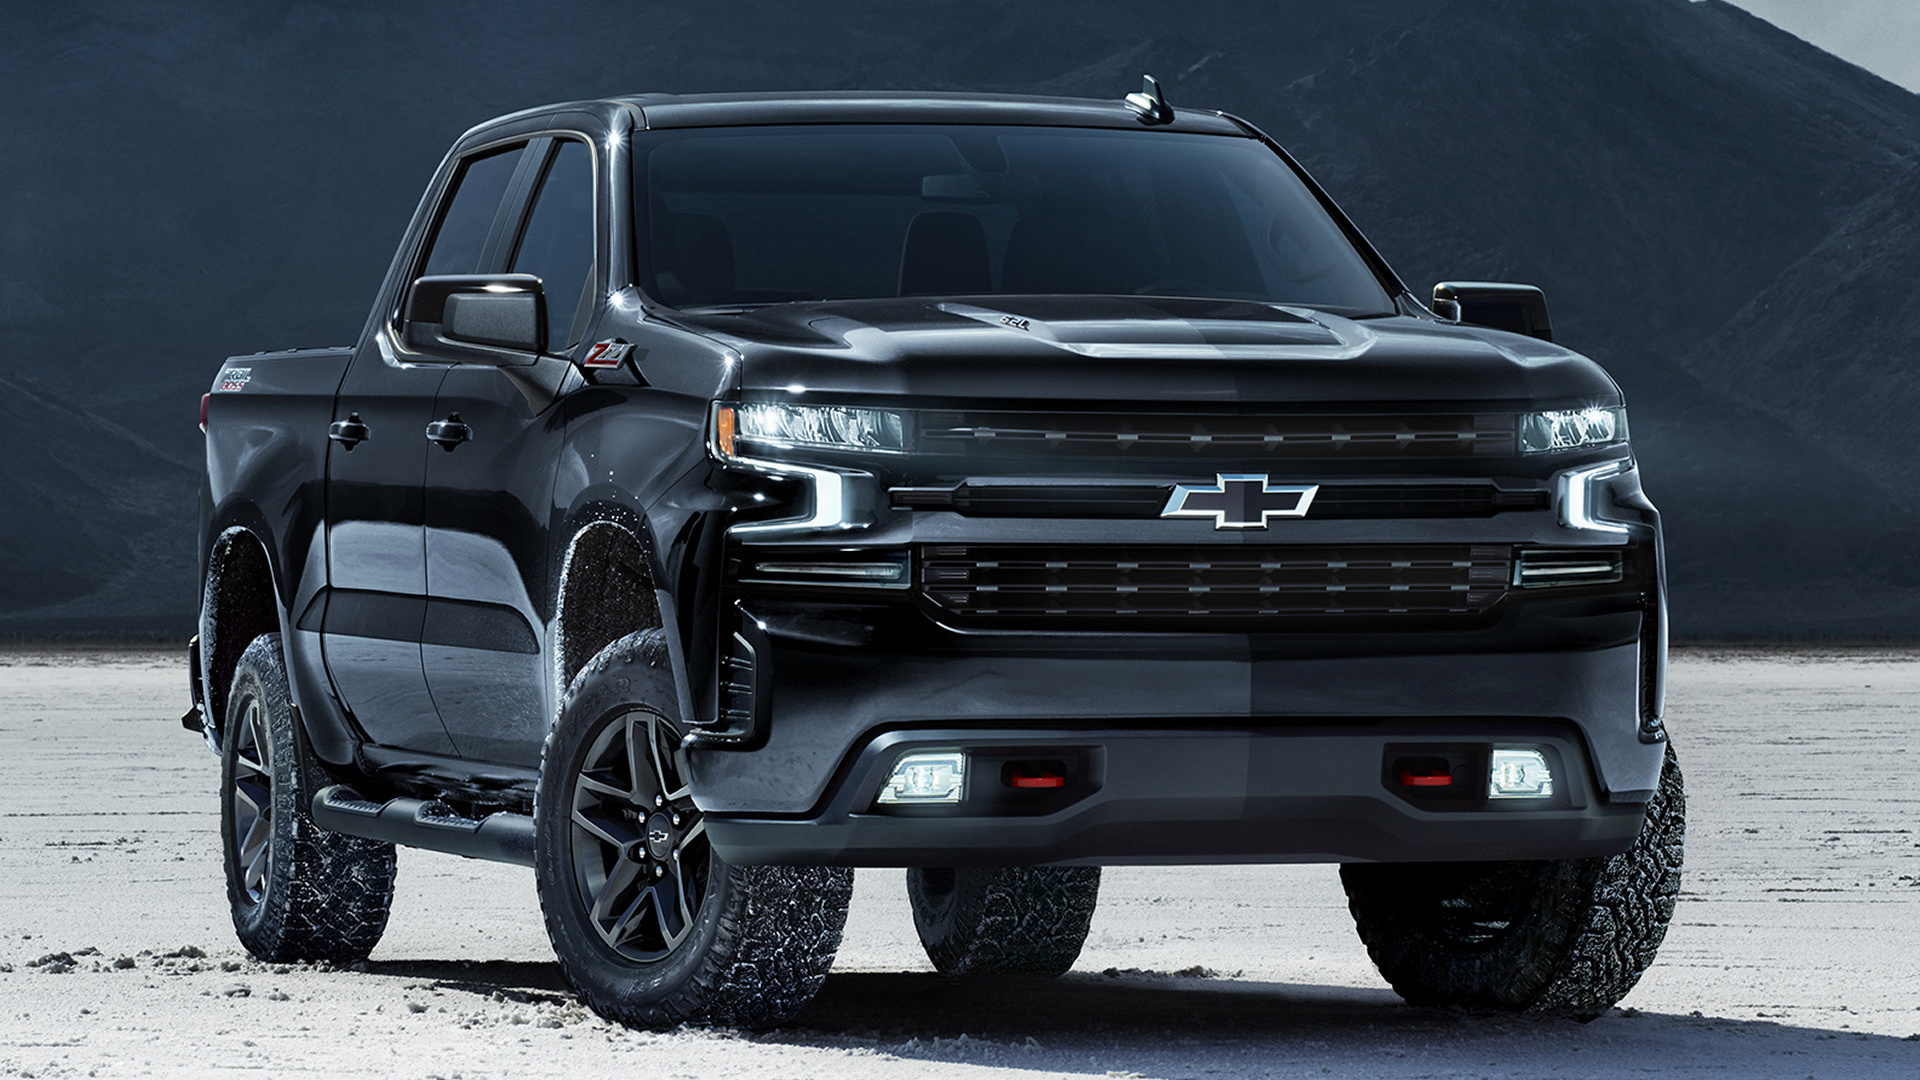 2020 chevrolet silverado z71 trail boss crew cab midnight edition